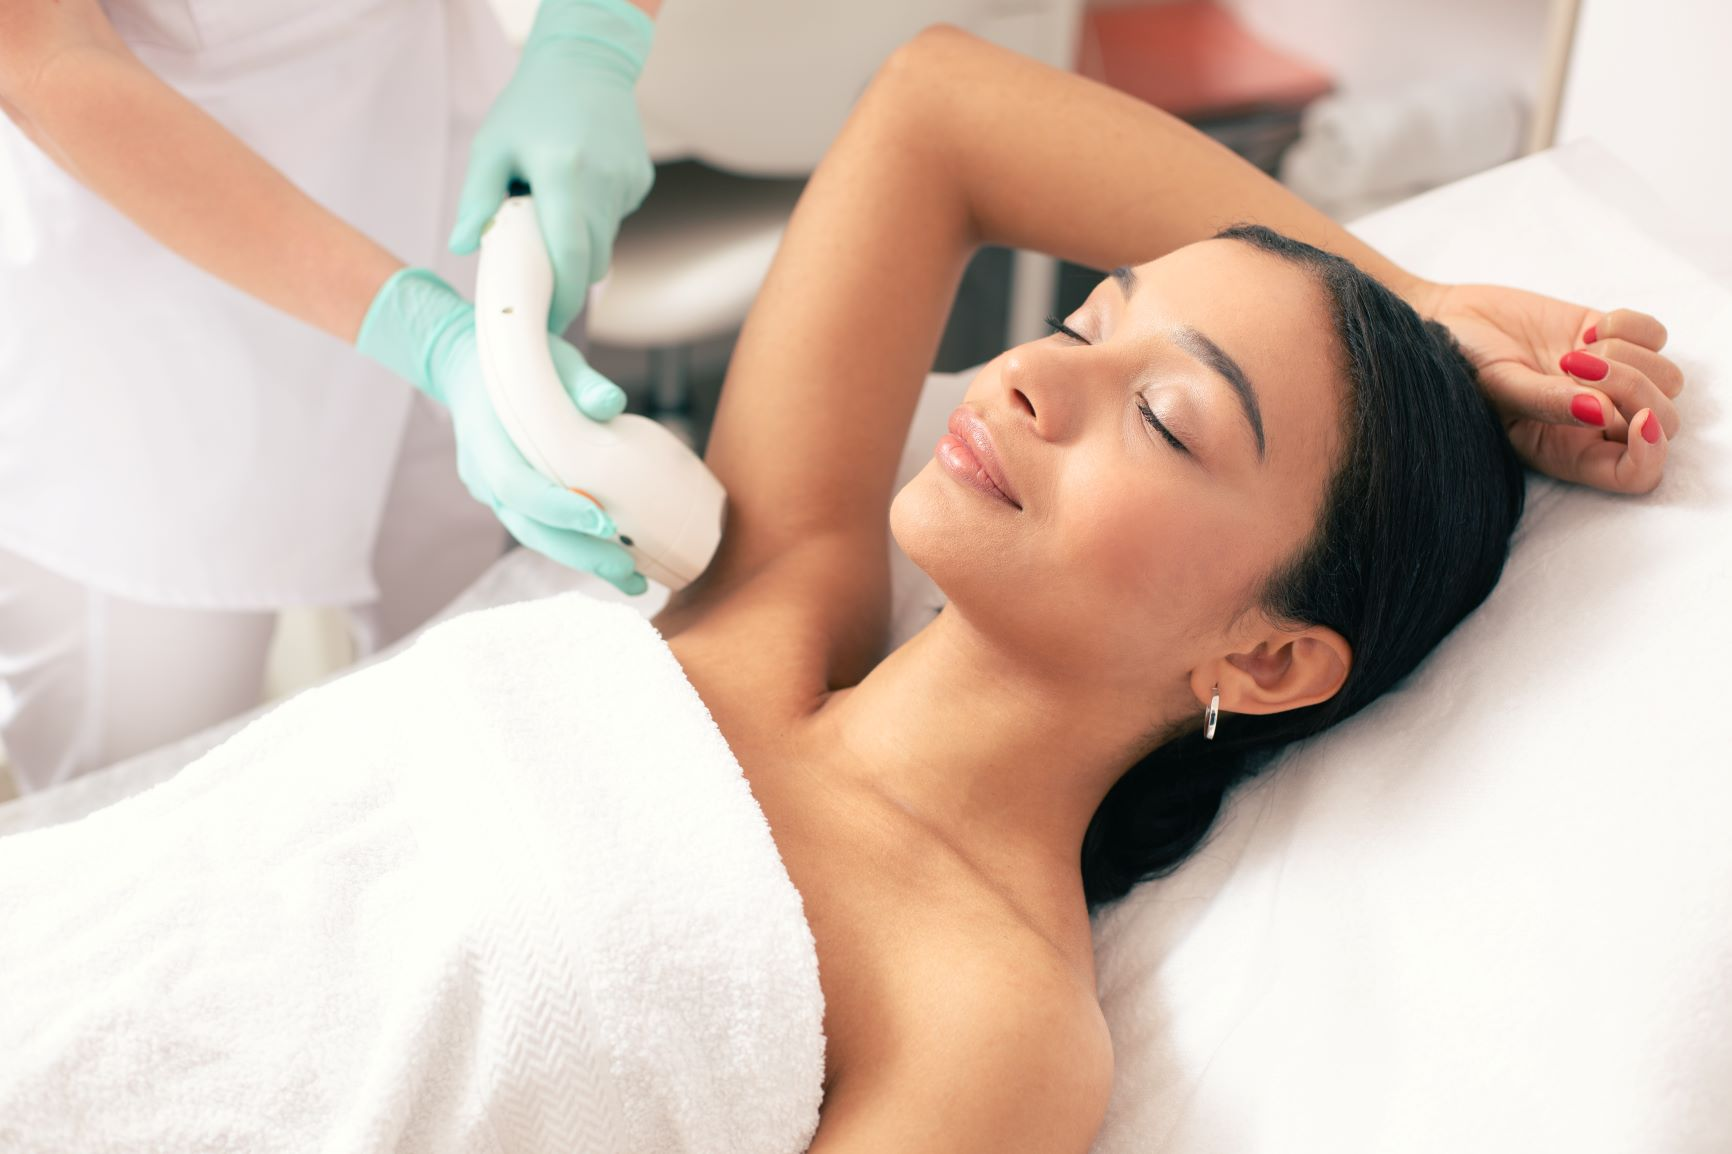 dark-haired woman receiving laser hair removal treatment